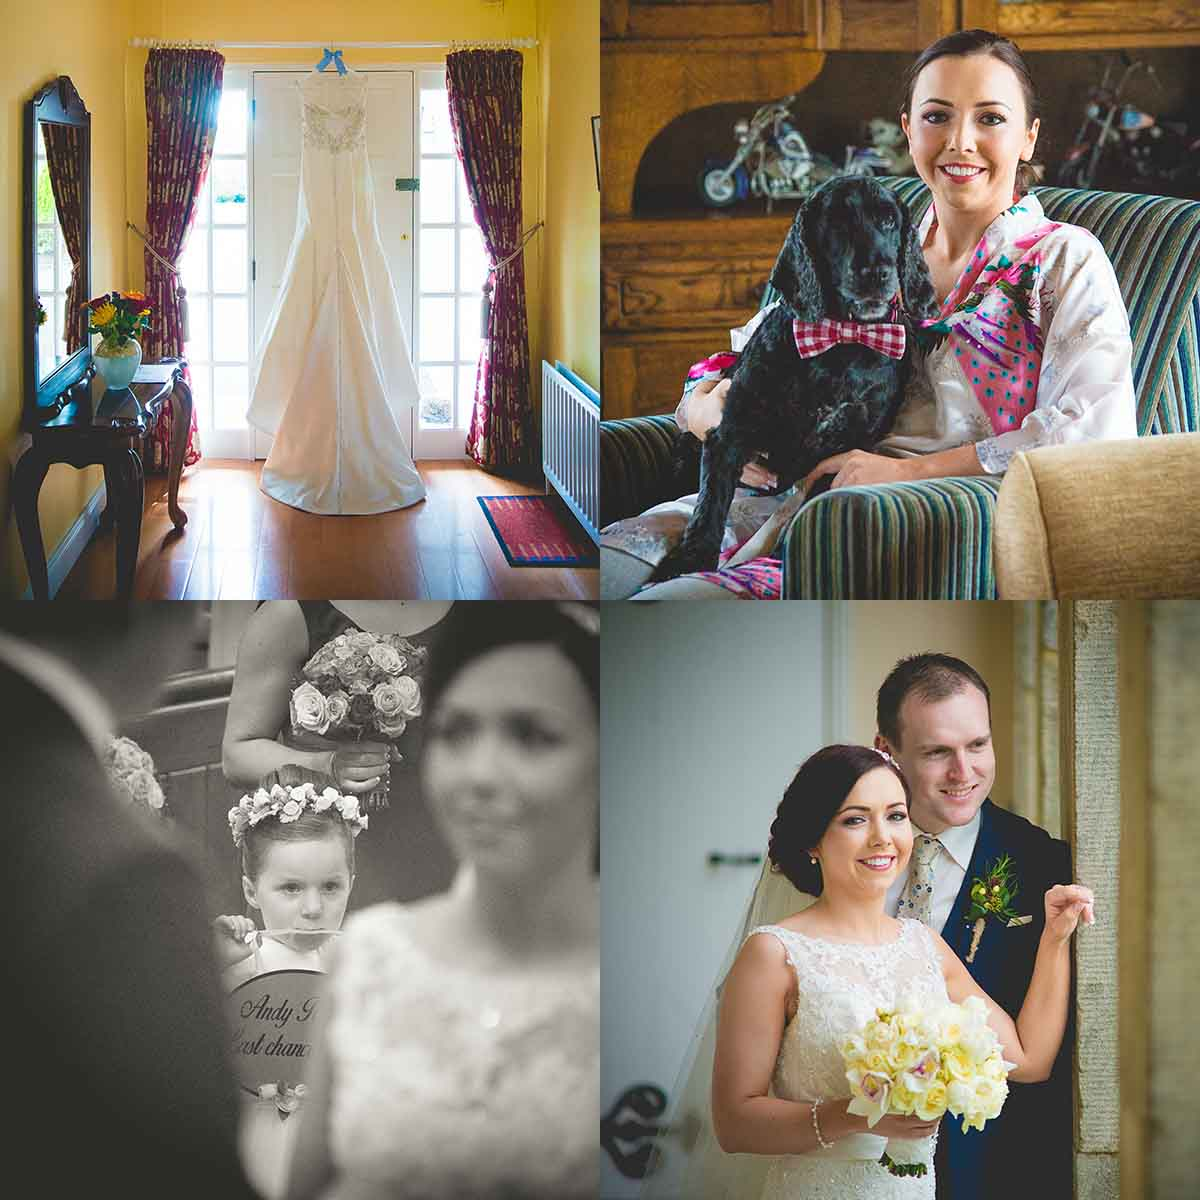 How to boost your wedding photography business